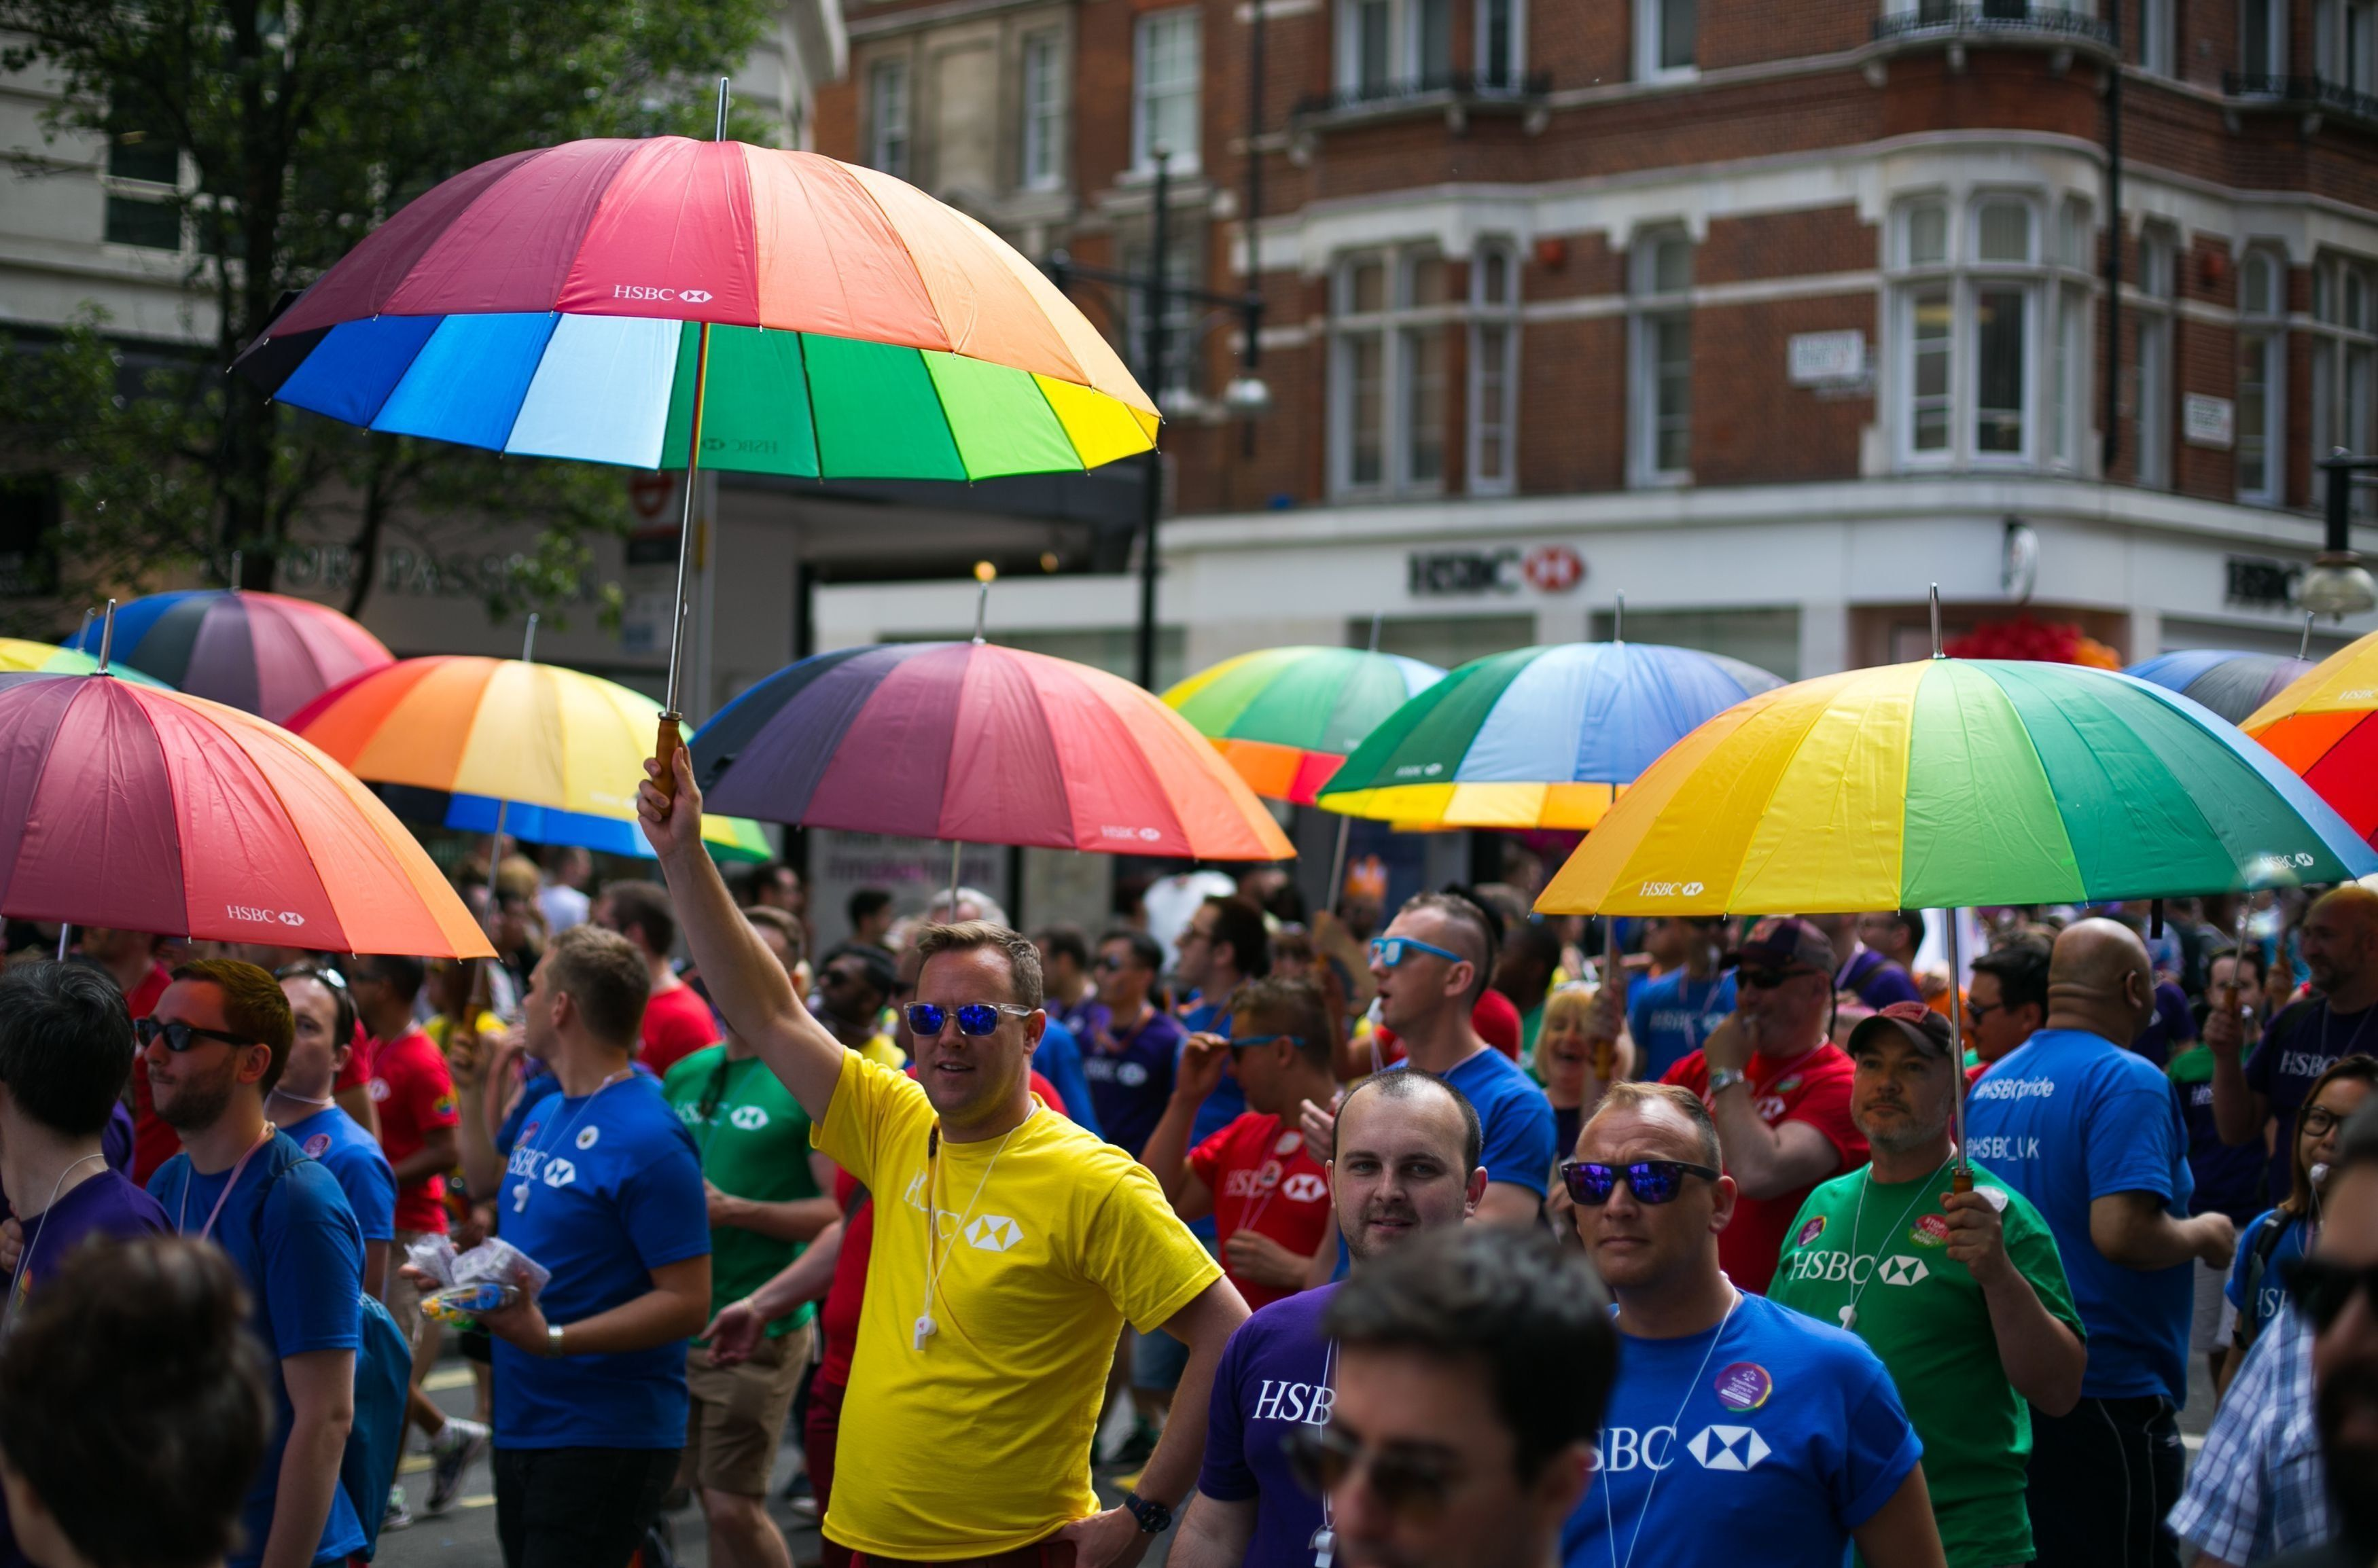 London Pride 2017: Everything You Need To Know For The